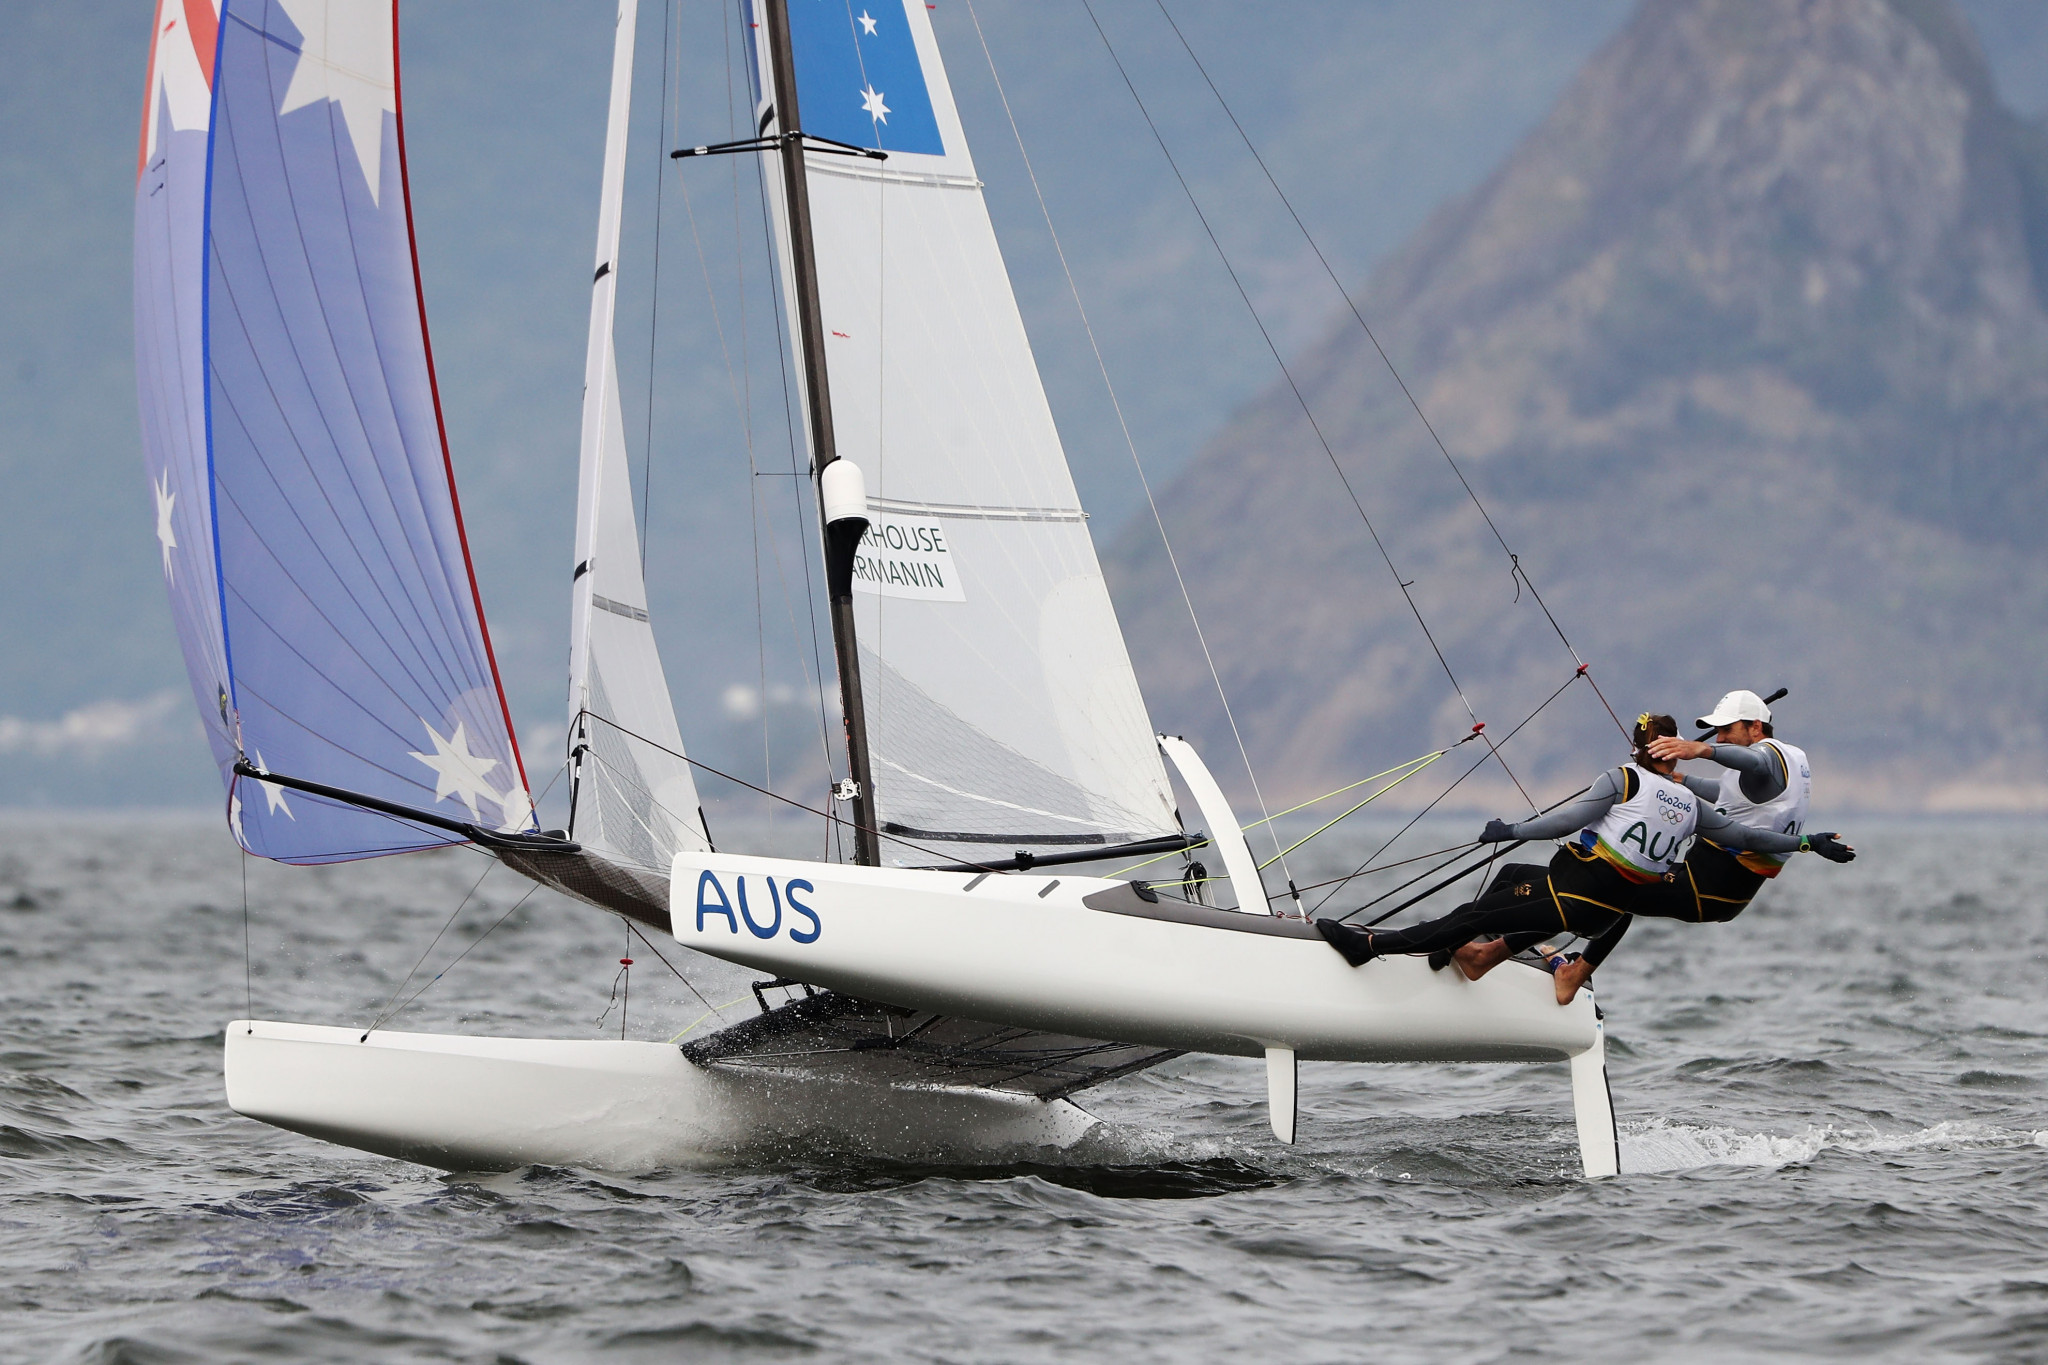 Auckland to host 49er and Nacra 17 World Championships in 2019